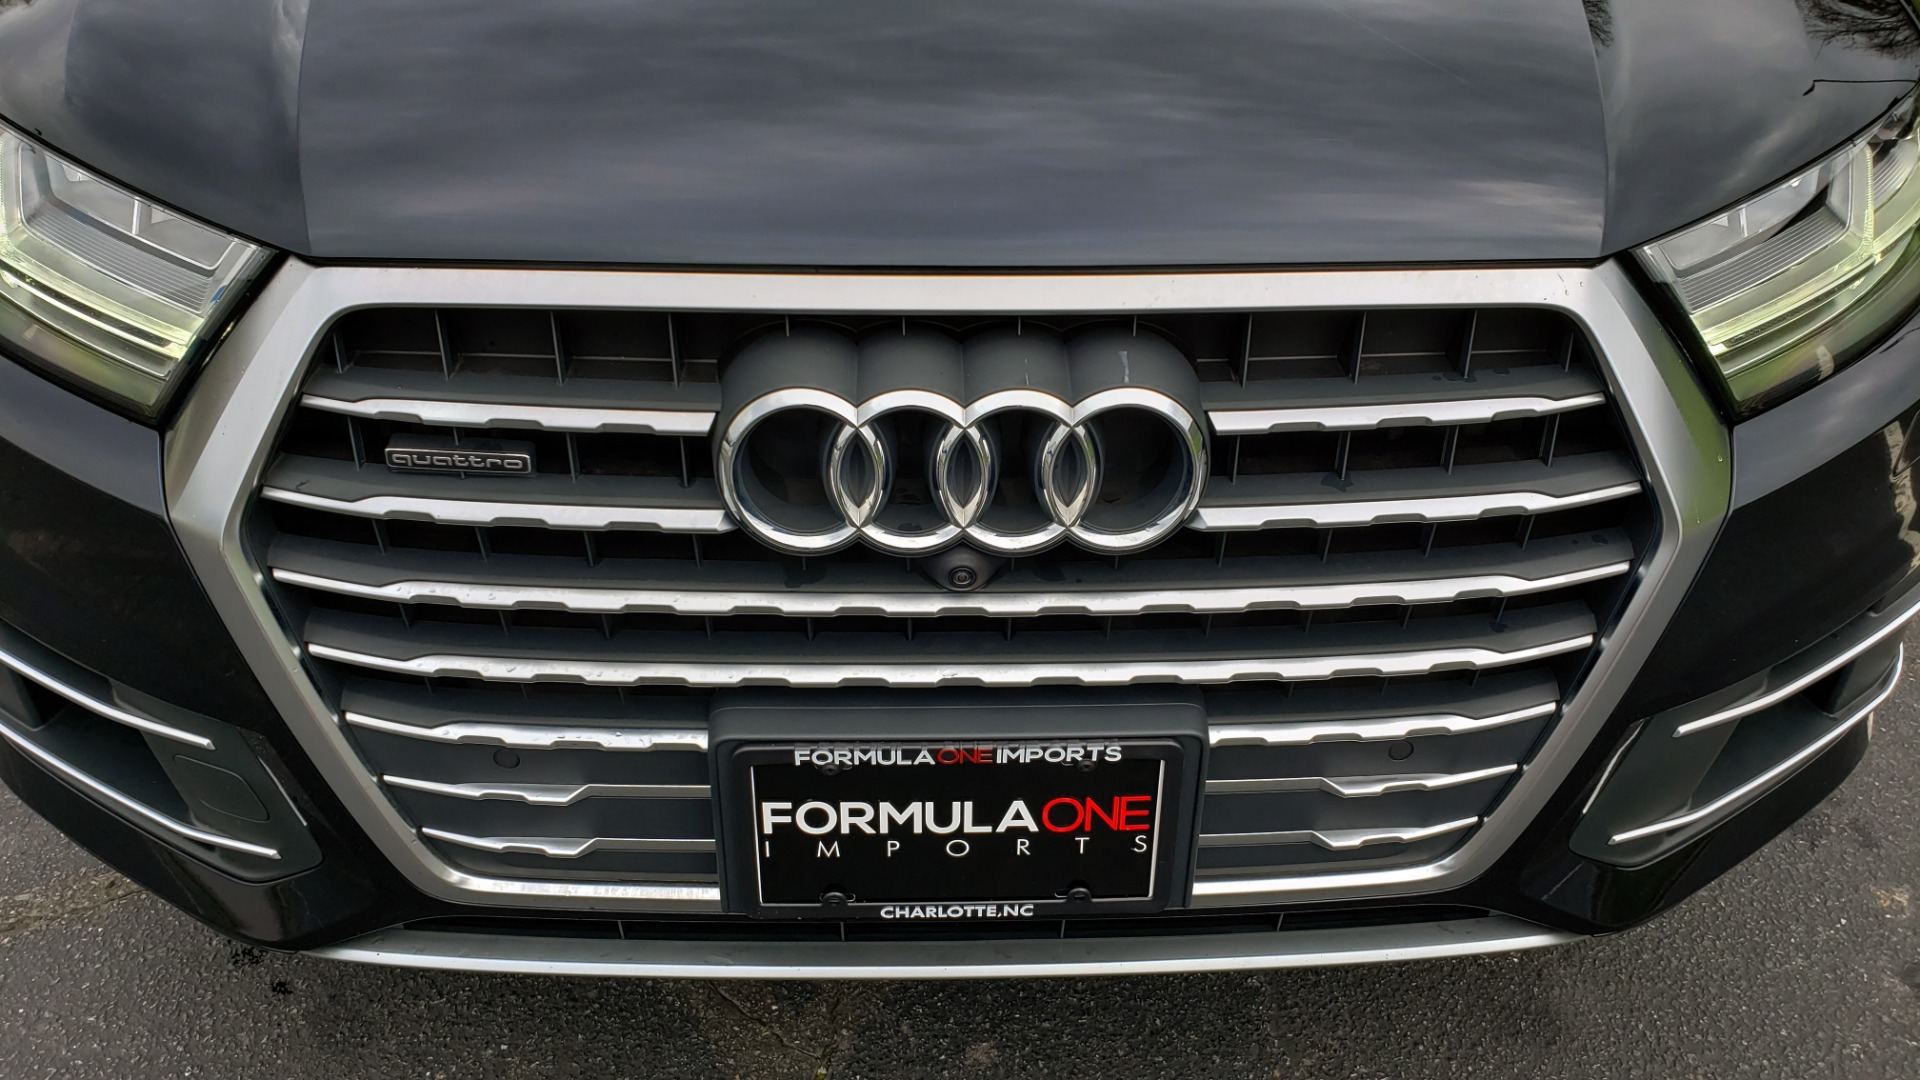 Used 2017 Audi Q7 PRESTIGE 3.0T / AWD / NAV / PANO-ROOF / HTD STS / BOSE / VISION for sale Sold at Formula Imports in Charlotte NC 28227 14